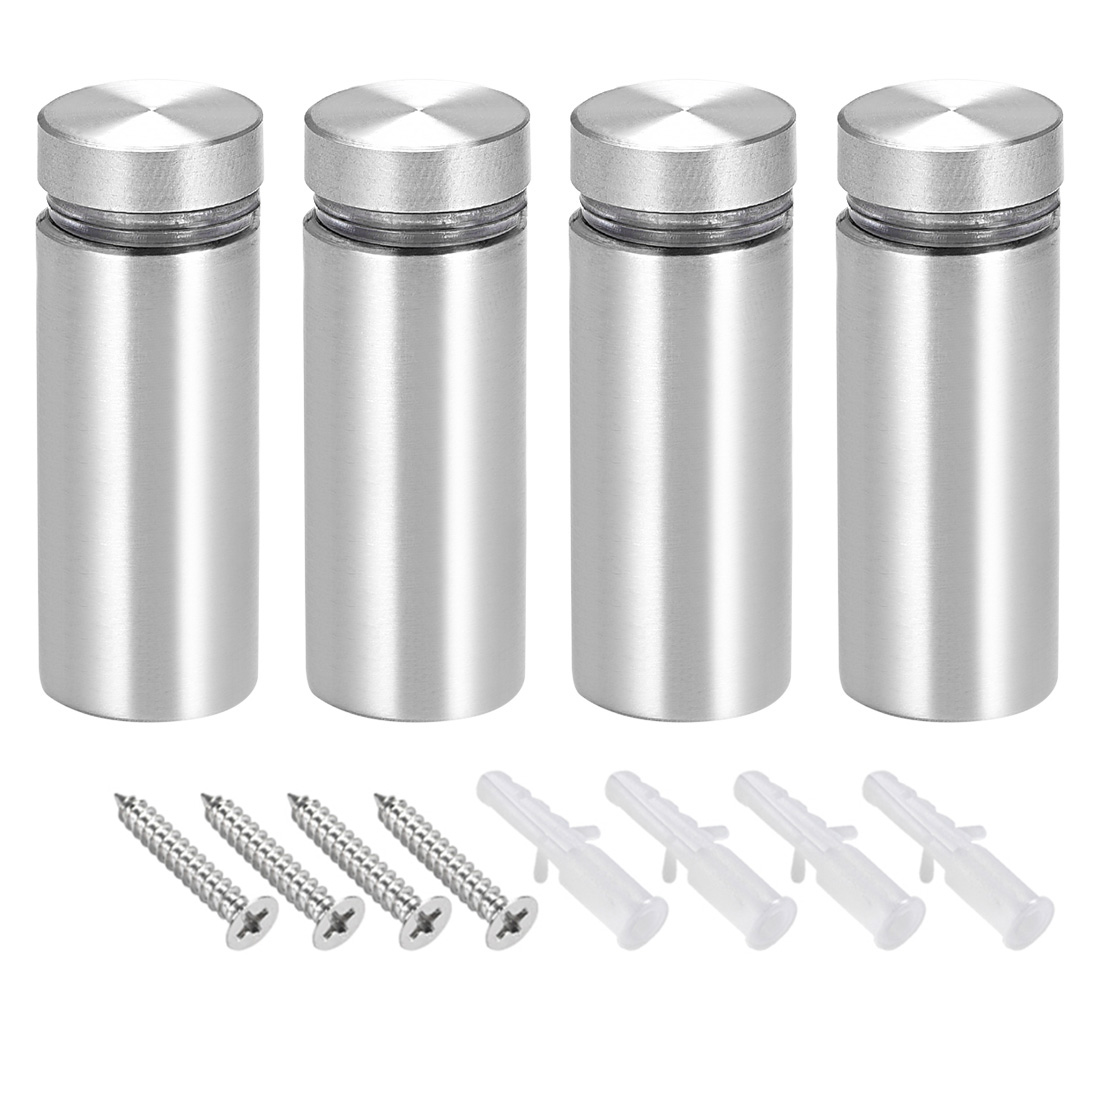 Glass Standoff Mount Solid Stainless Steel Wall Standoff Holder 16mmx42mm 4 Pcs